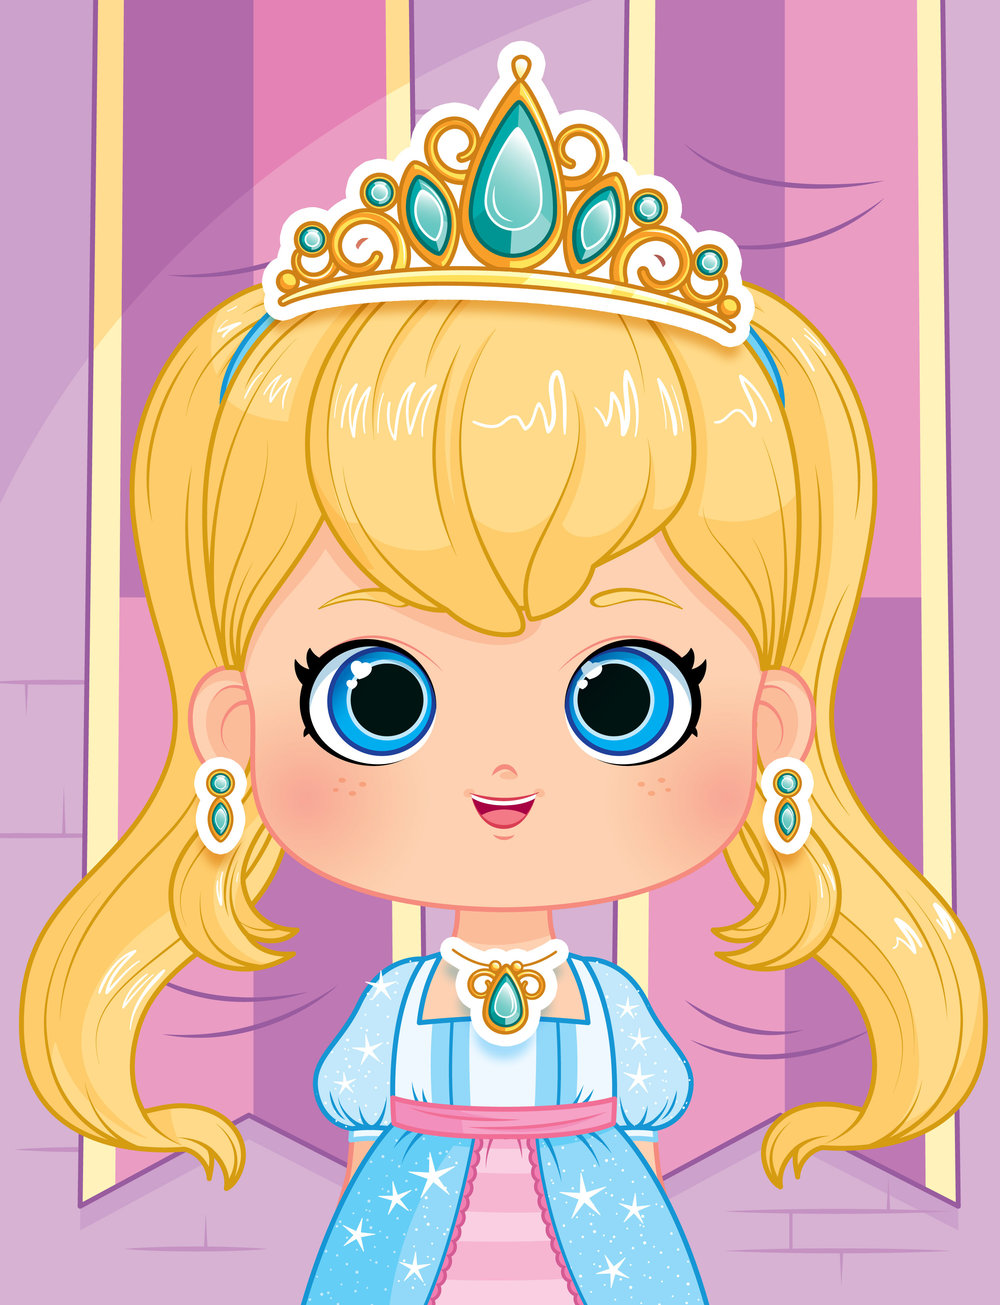 PRINCESS_STICKER_THE_CLEVER_FACTORY.jpg